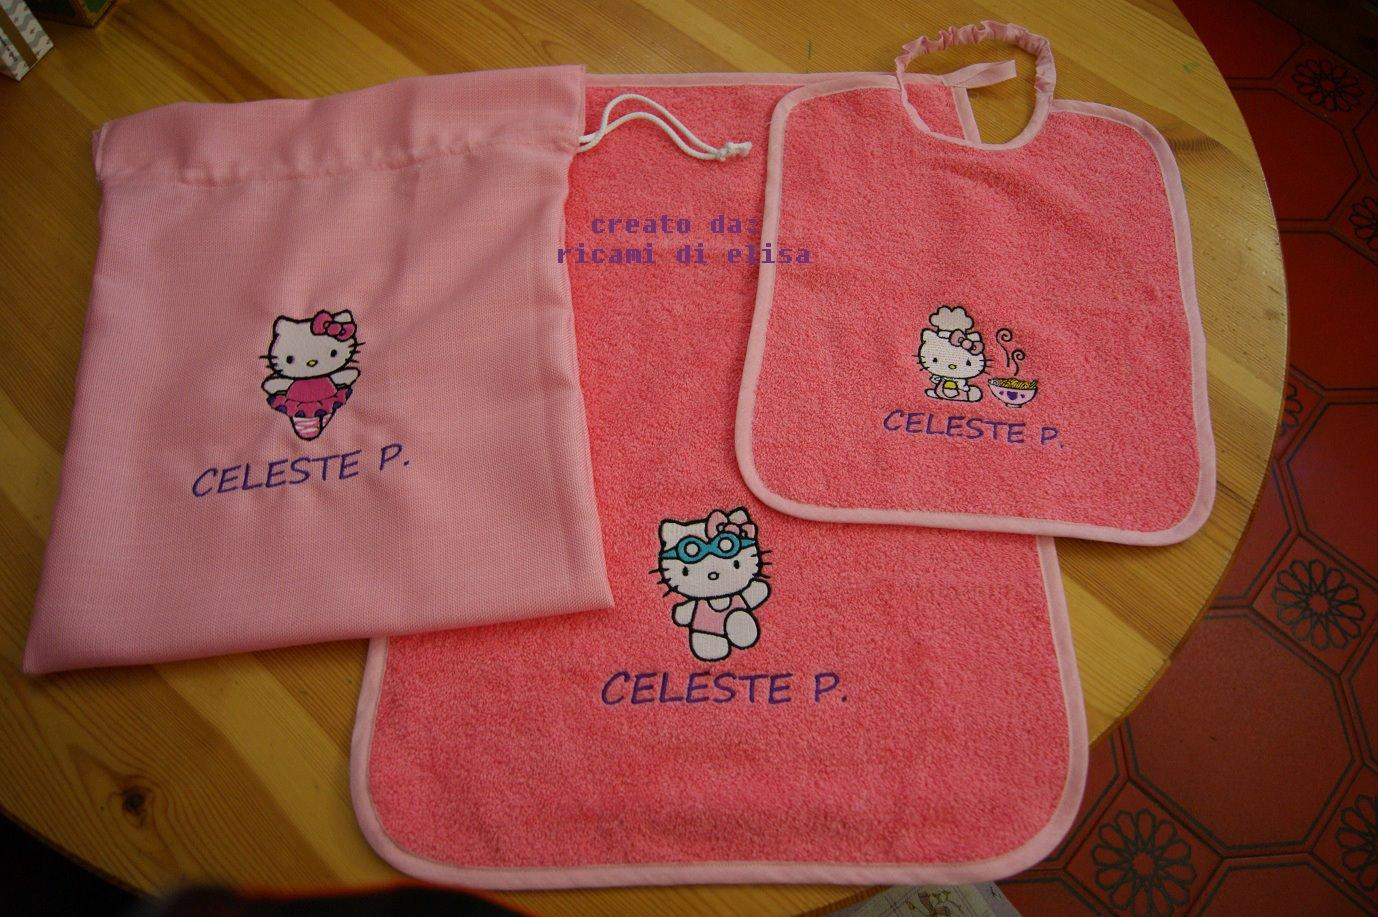 Baby gift set with Hello Kitty embroidery design